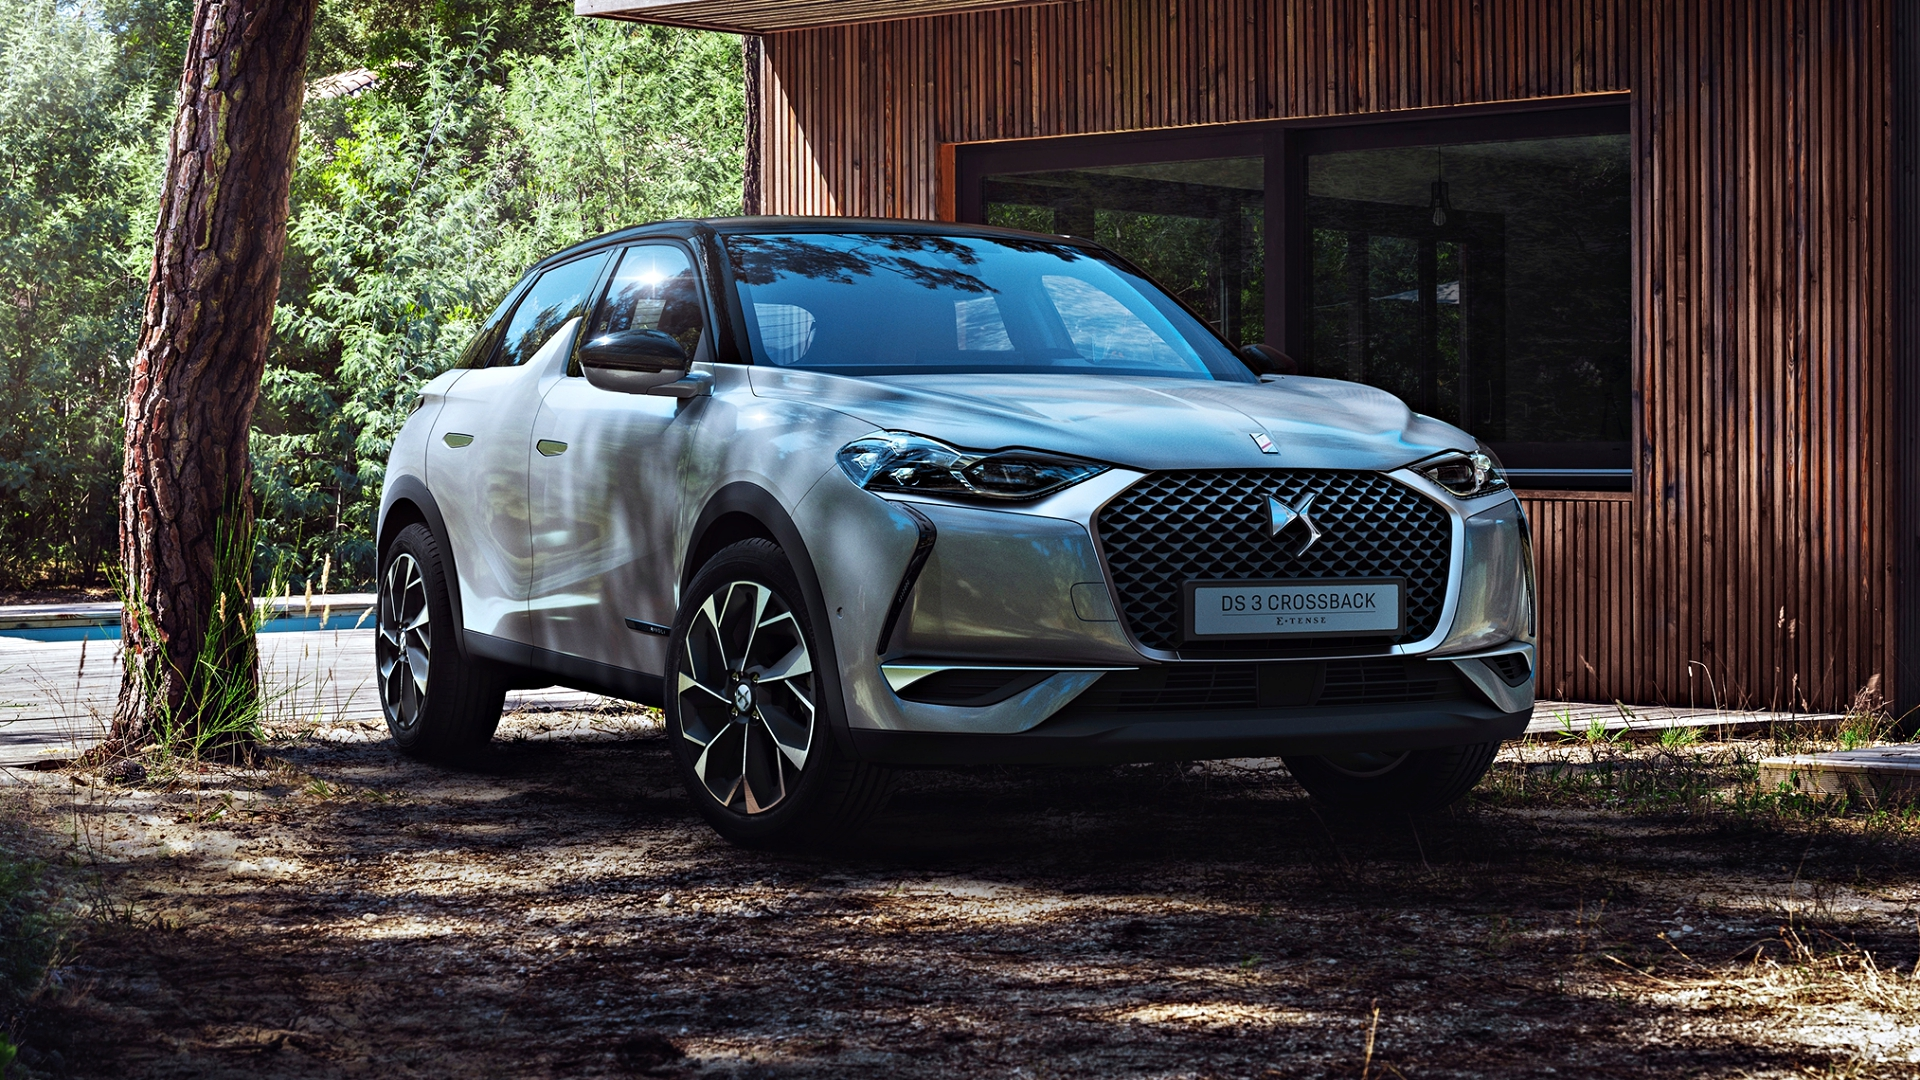 News - 2019 DS3 Crossback Announced – Petrol, Diesel, Full-Electric